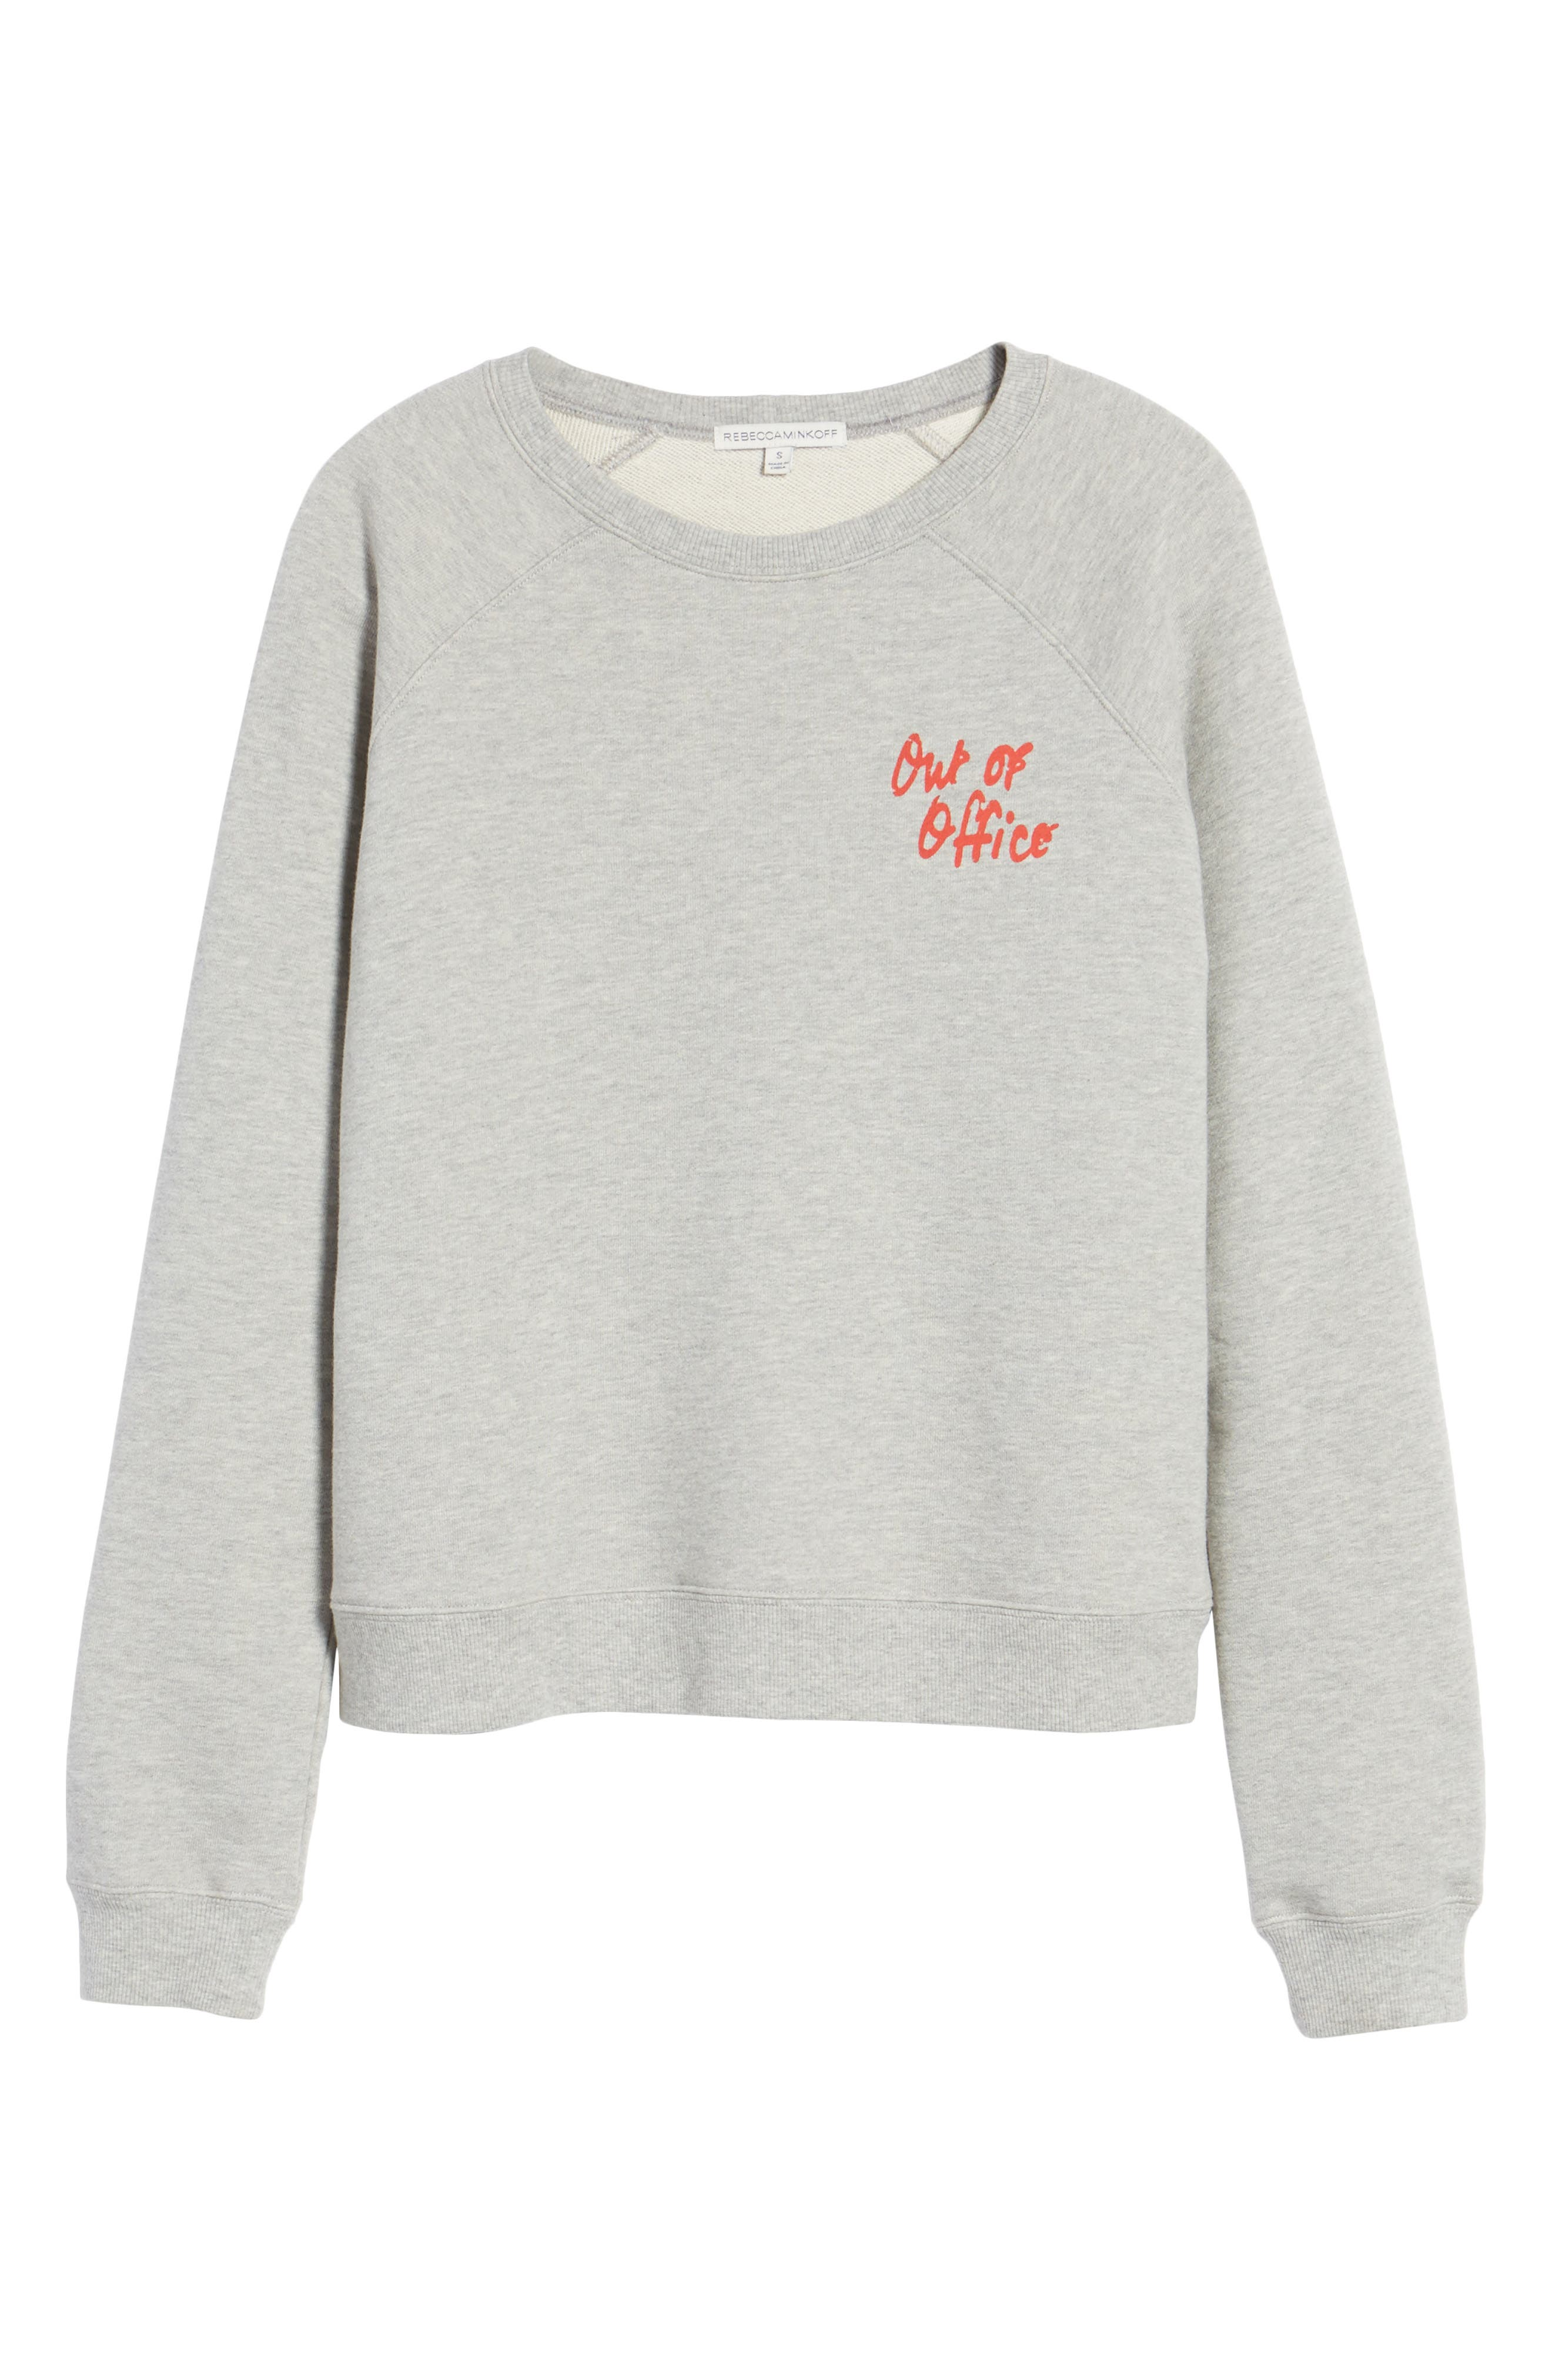 Out of Office Sweatshirt,                             Alternate thumbnail 6, color,                             Heather Grey/ Red